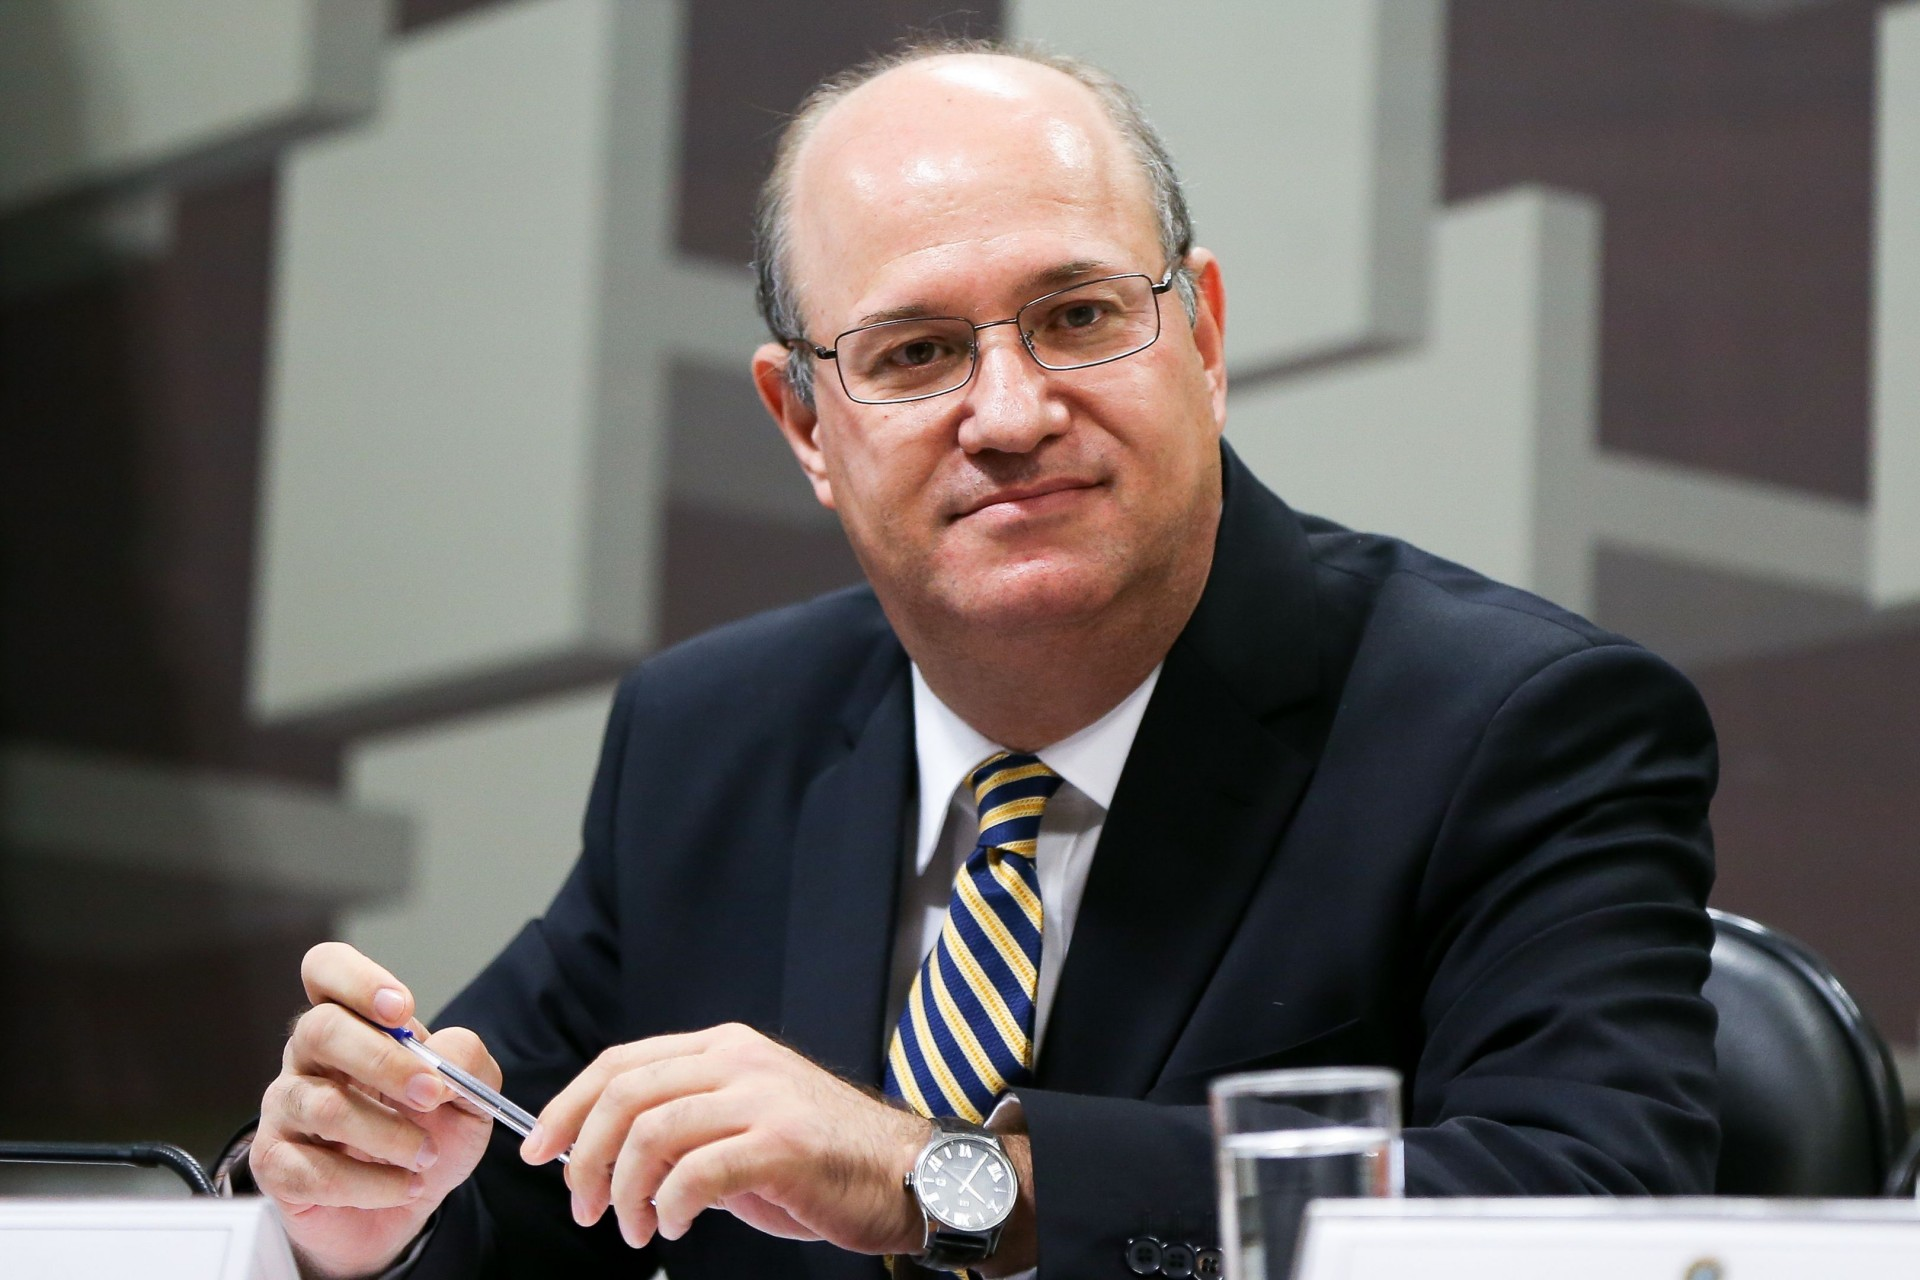 The new Governor of the Central Bank of Brazil - Ilan Goldfajn